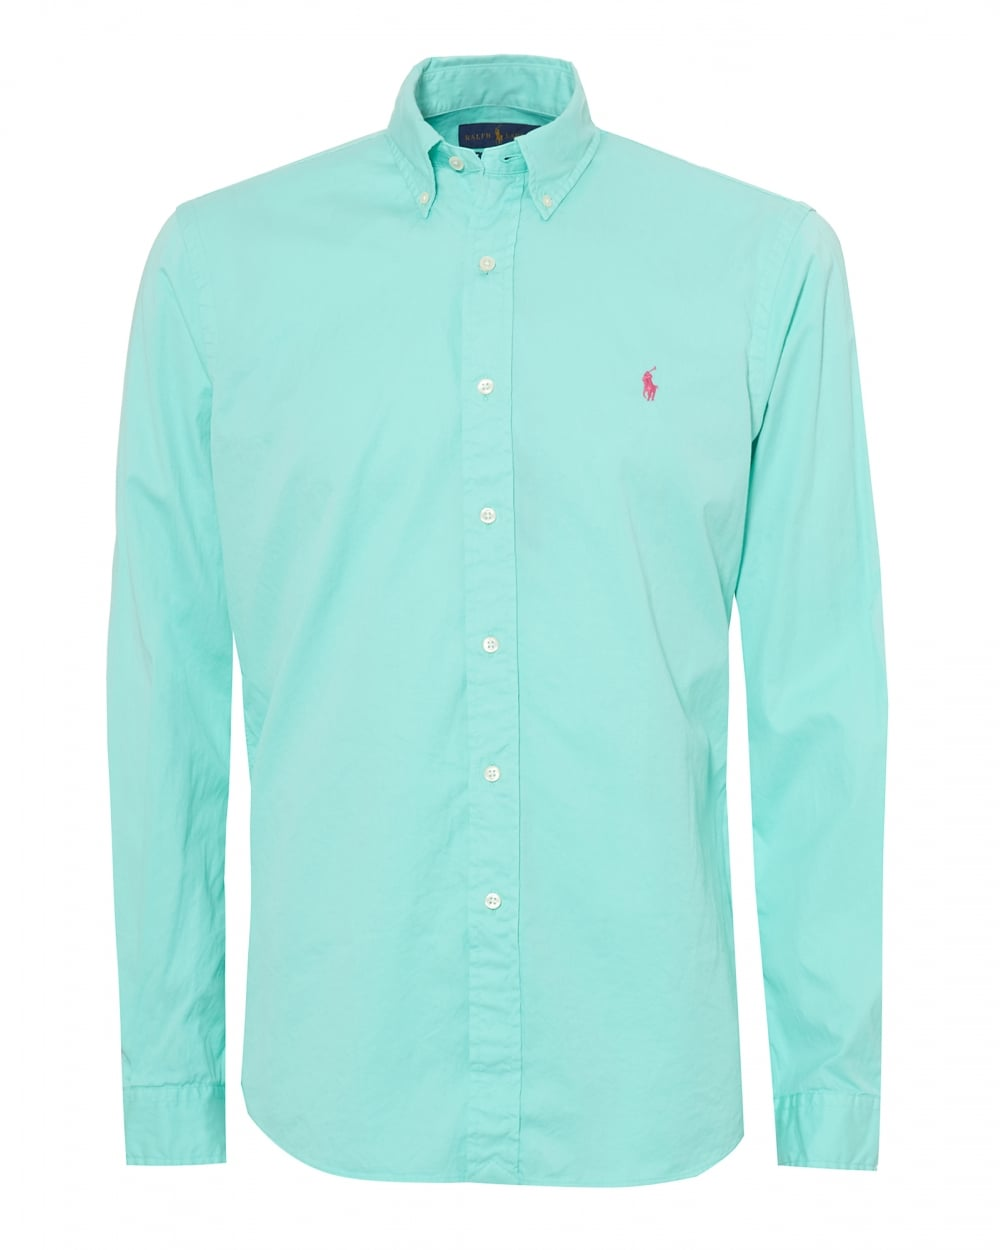 Mint Color Mens Dress Shirt Bcd Tofu House